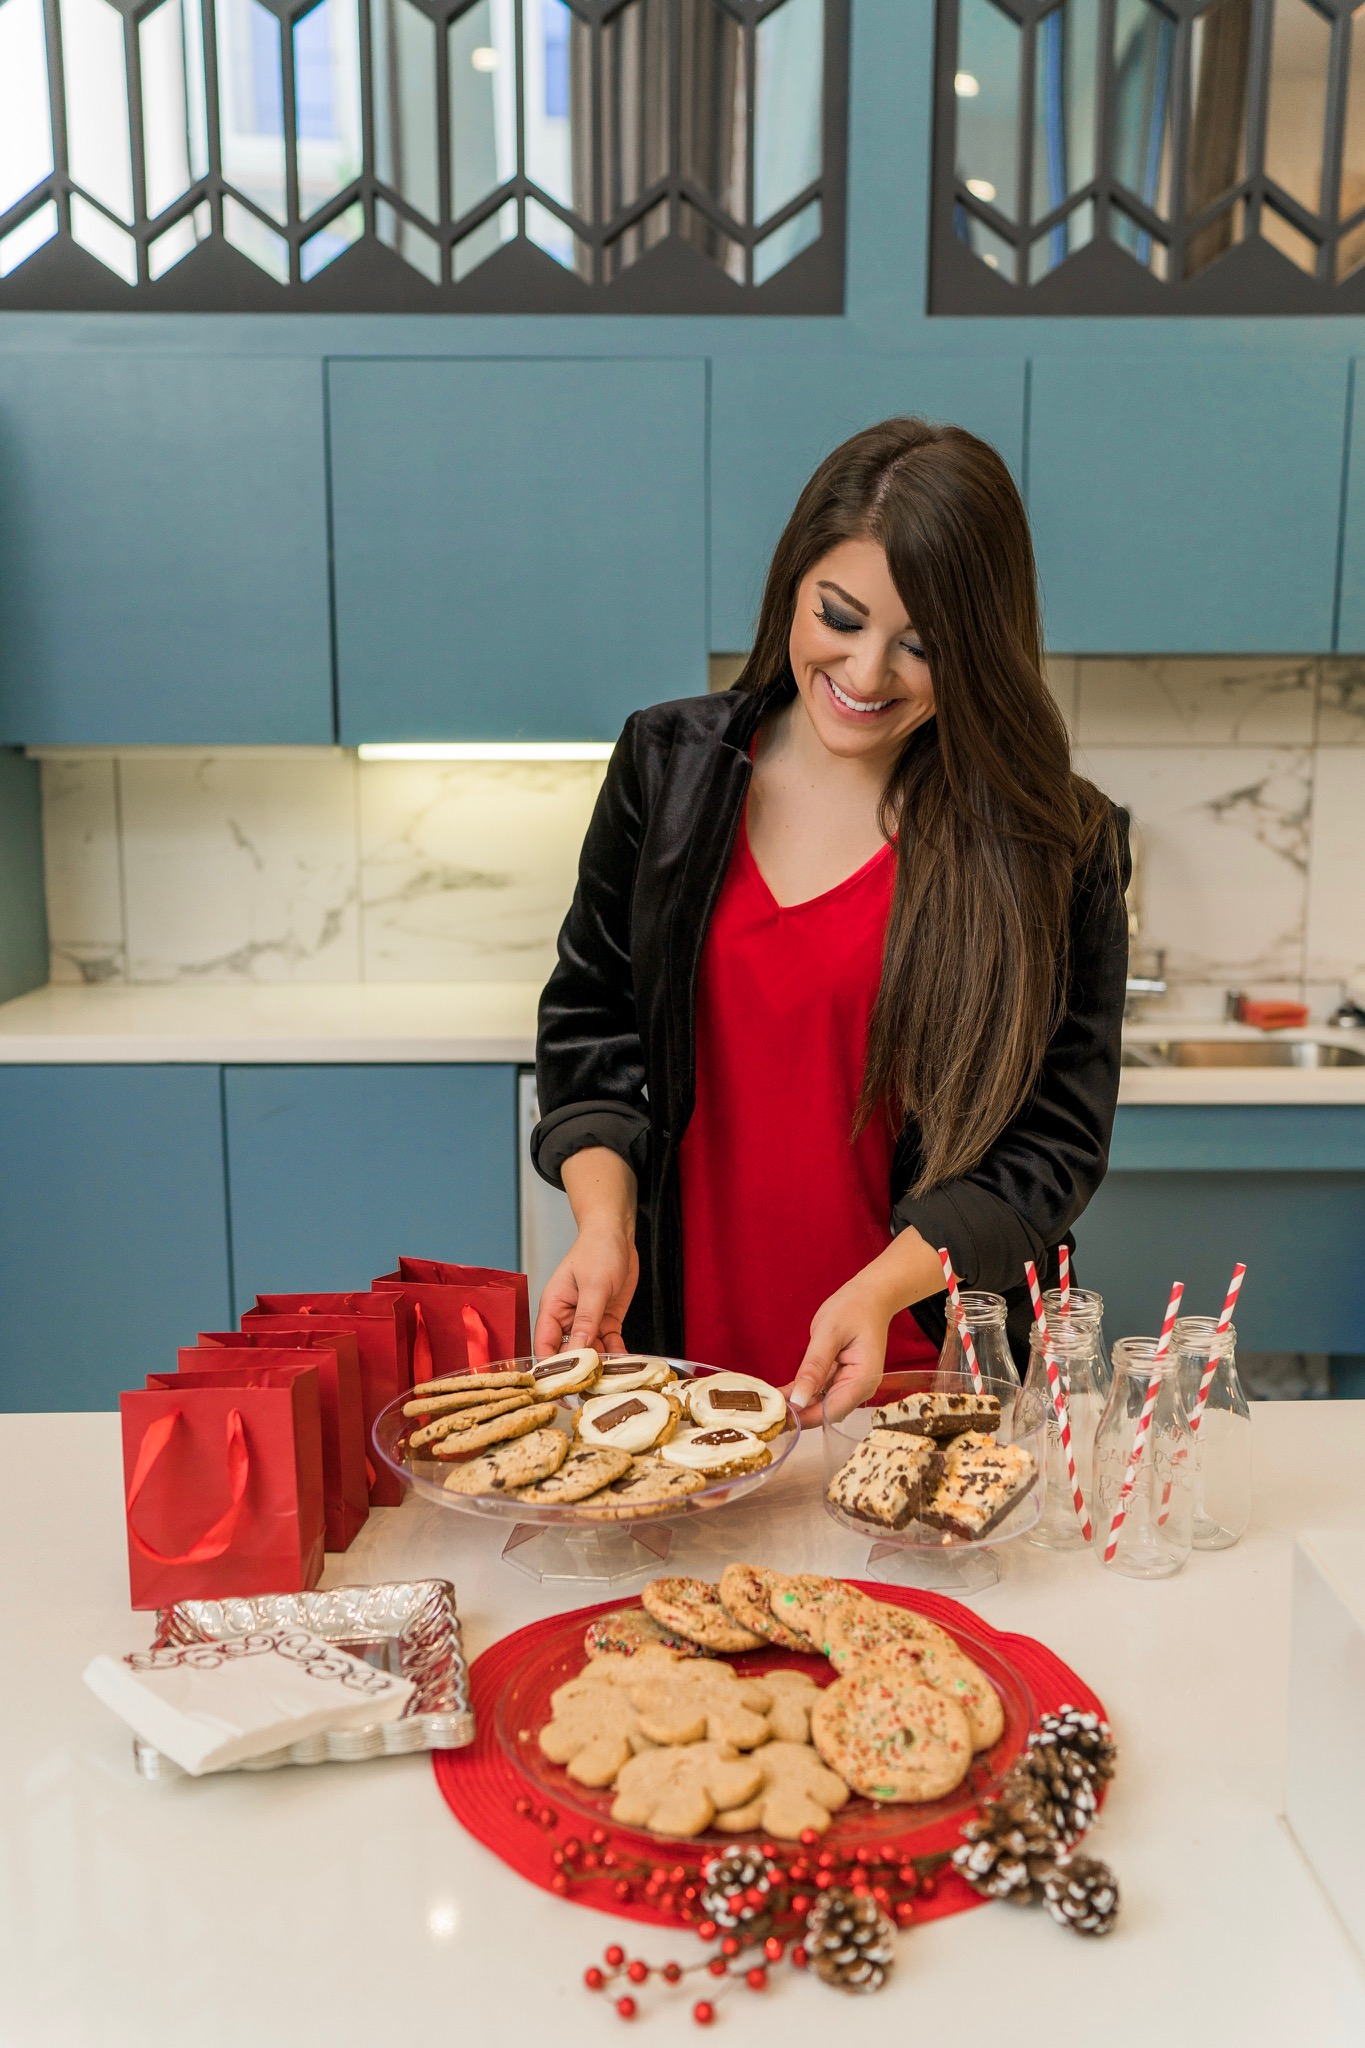 How To Host A Delicious Cookie Exchange Party!